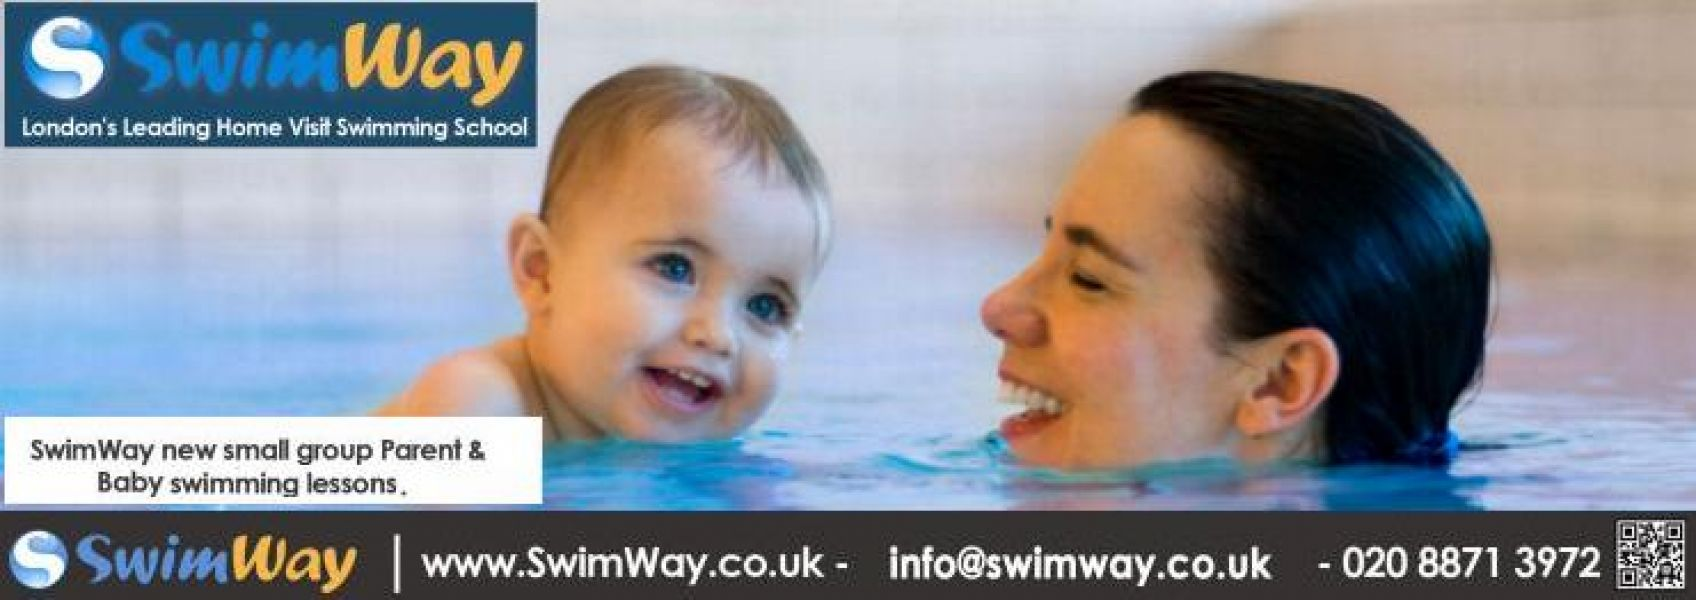 NEW SwimWay Swimming Lessons in Tooting Bec (Balham side)